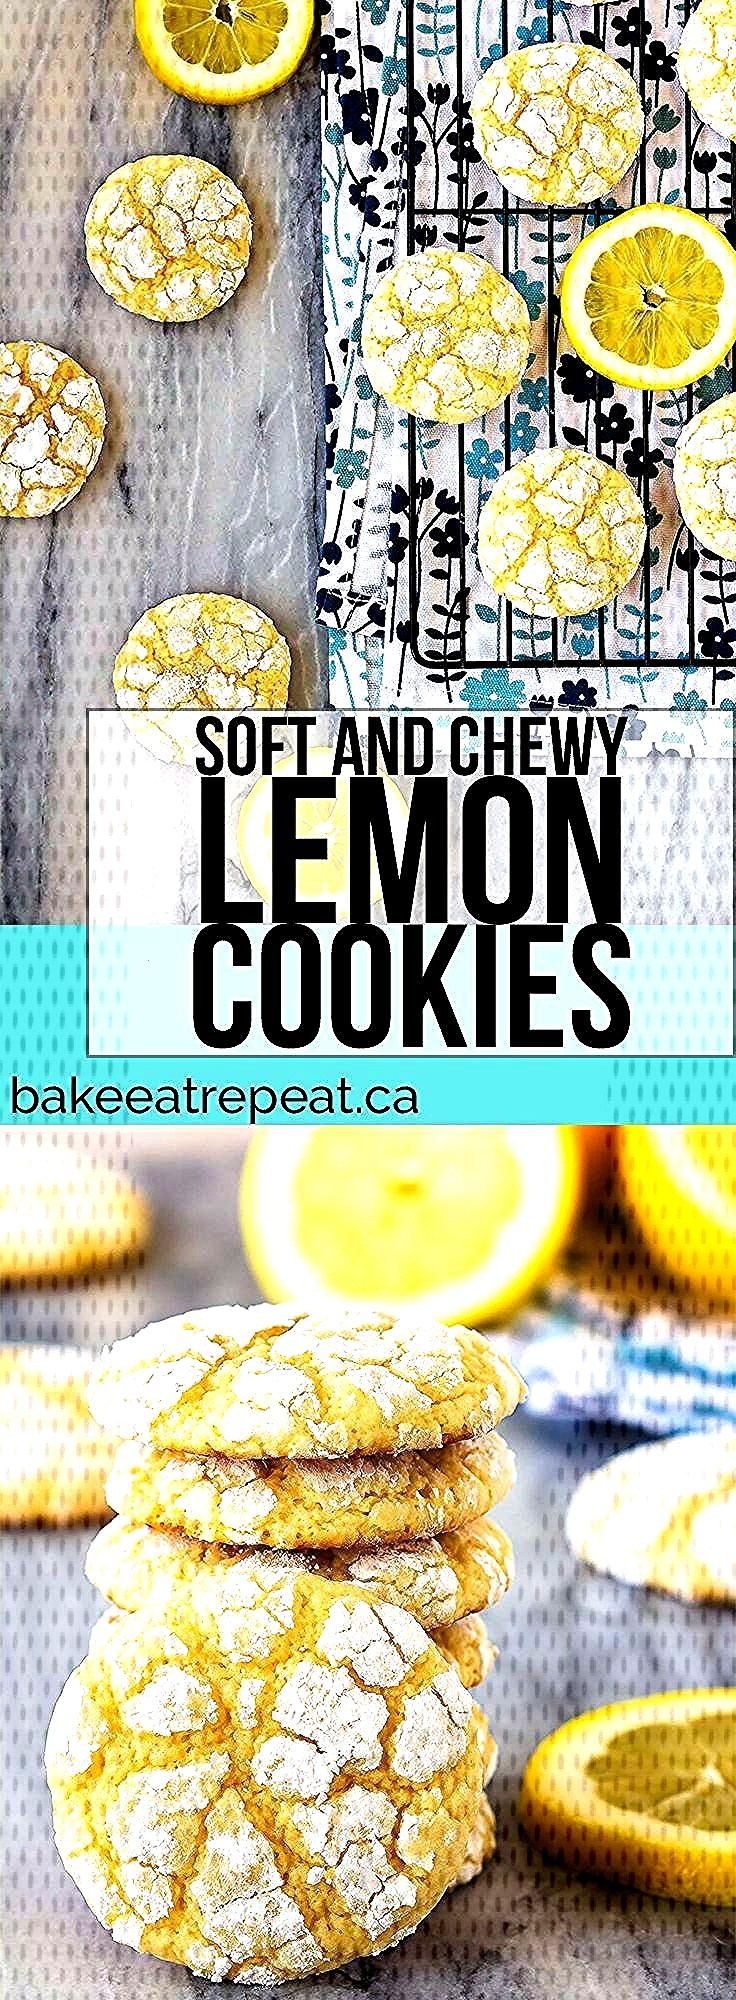 This easy recipe makes soft lemon cookies that are perfectly chewy. Coat them in powdered sugar bef